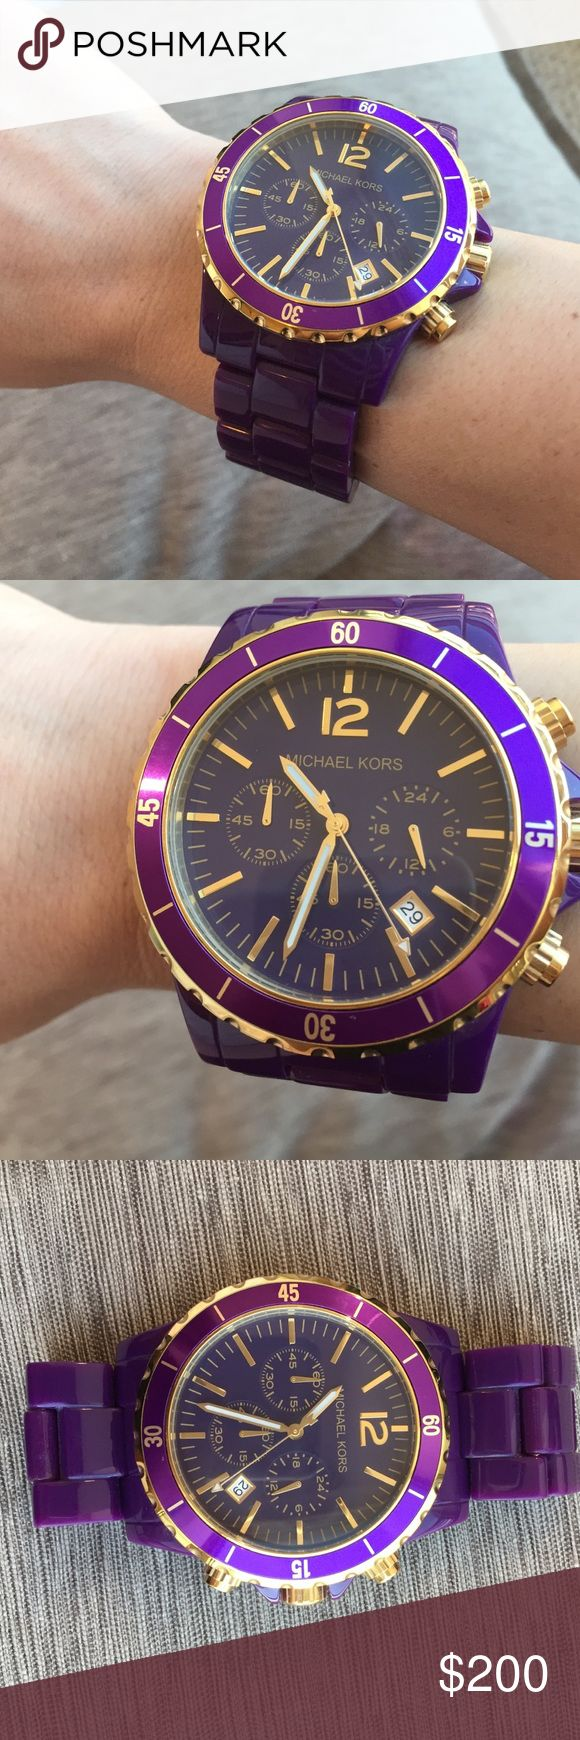 Michael Kors oversized purple plastic watch Oversized, purple Michal Kors plastic watch. Worn less than 5 times, like new condition. Please note watch battery is dead. Will arrive in original box with watch pillow and extra band segments and pins. Michael Kors Jewelry Bracelets